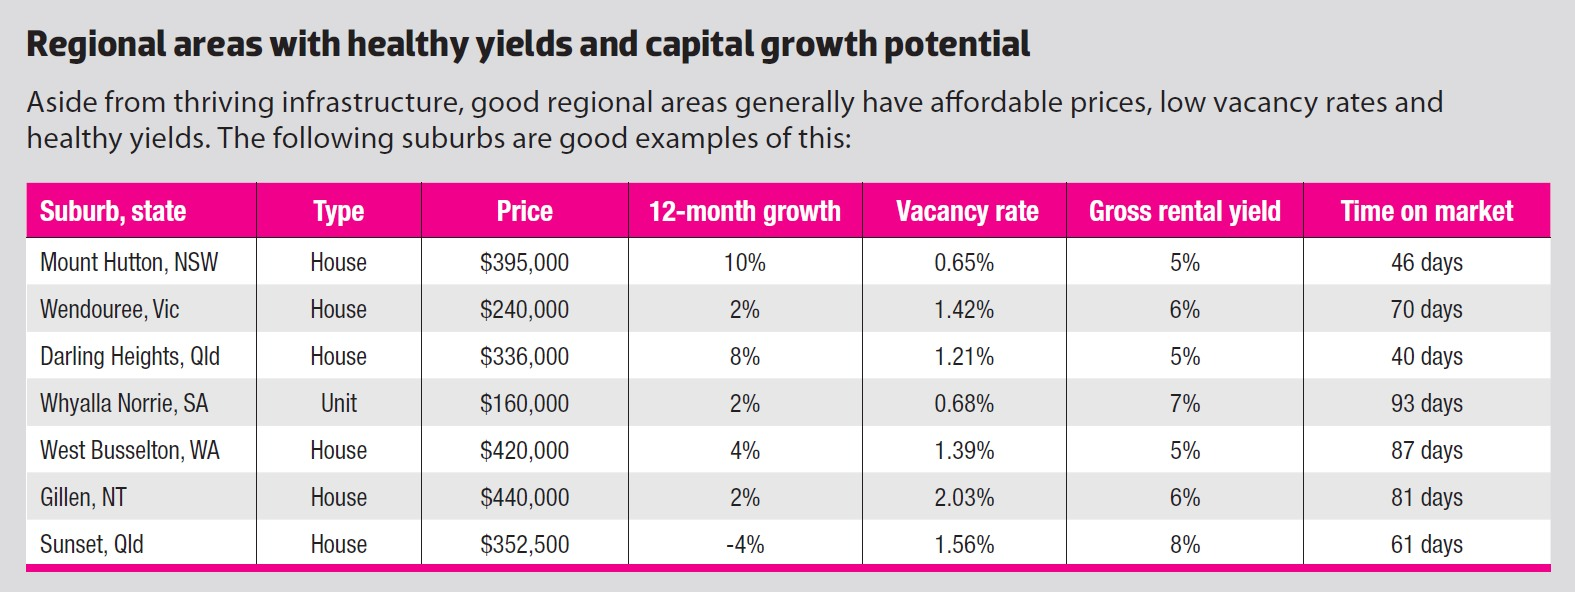 Regional Areas with Healthy Yields and Capital Growth Potential